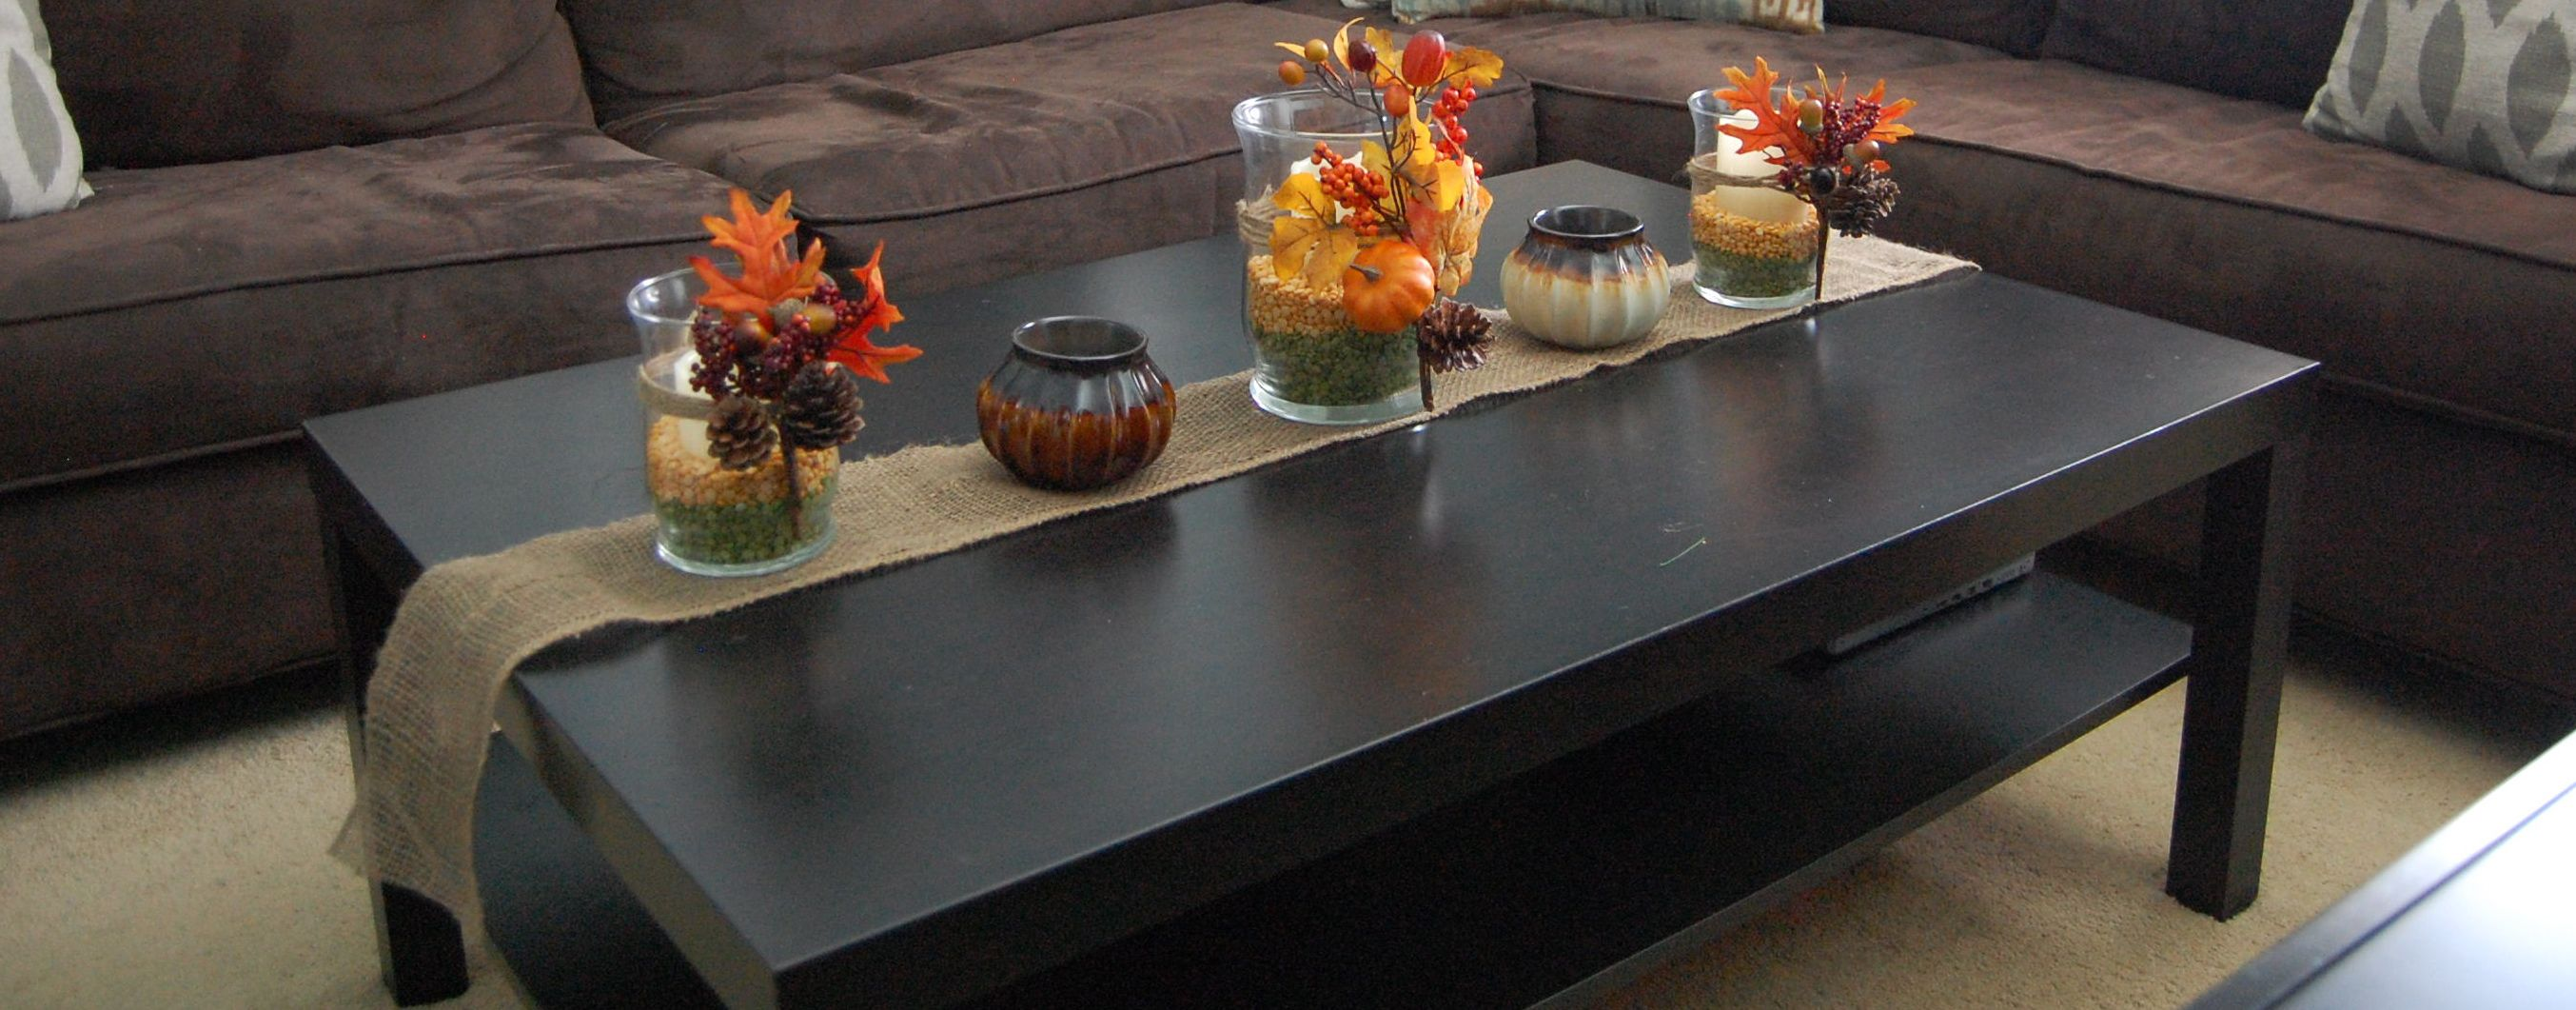 53 coffee table decor ideas that dont require a home stylist. dont